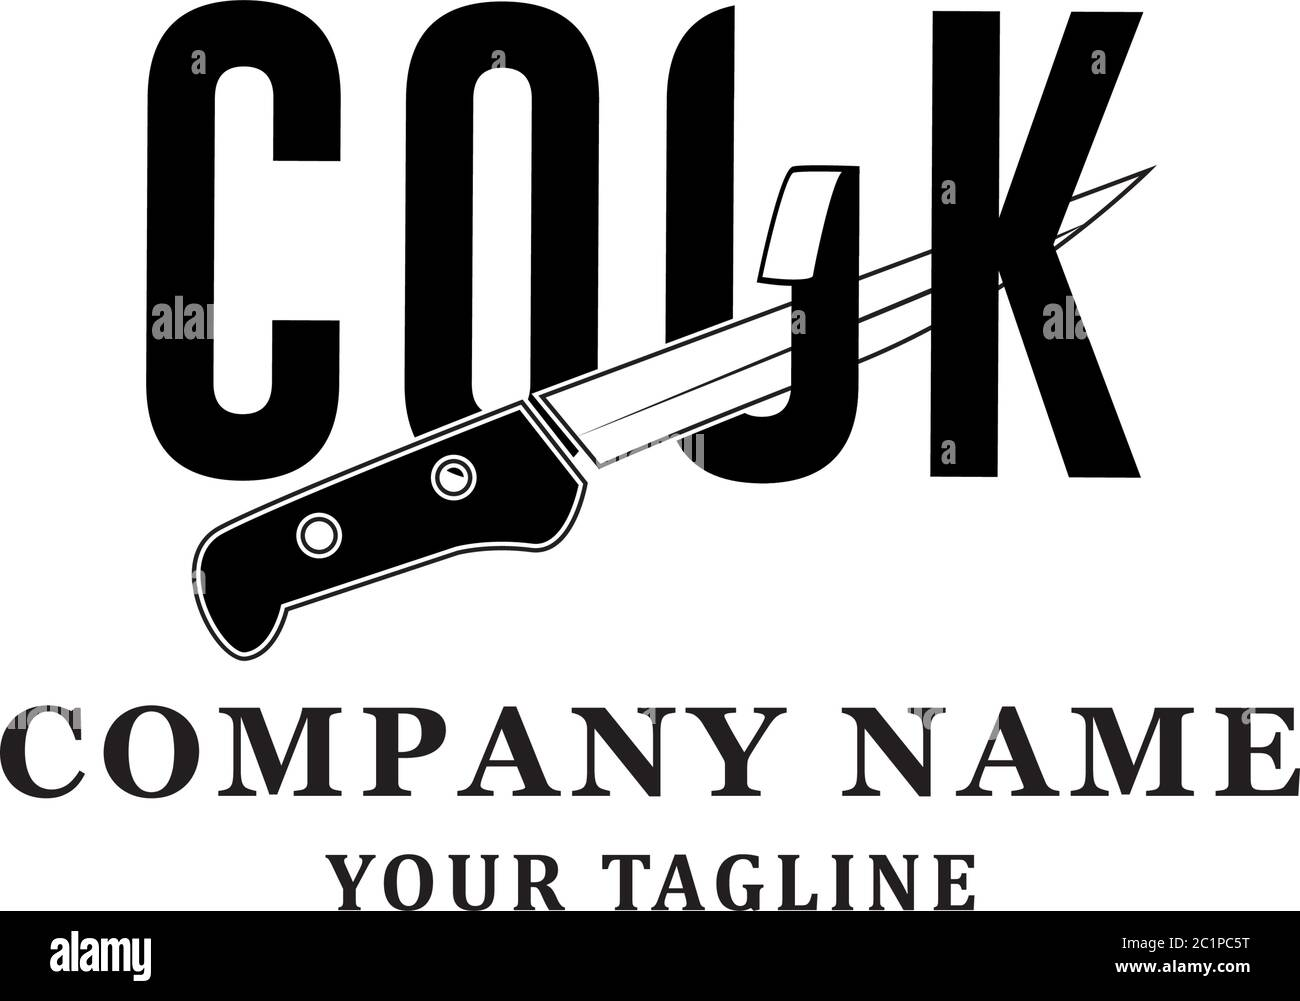 Restaurant Logo Idea Cook Sharply Logo Design Inspirations Stock Vector Image Art Alamy